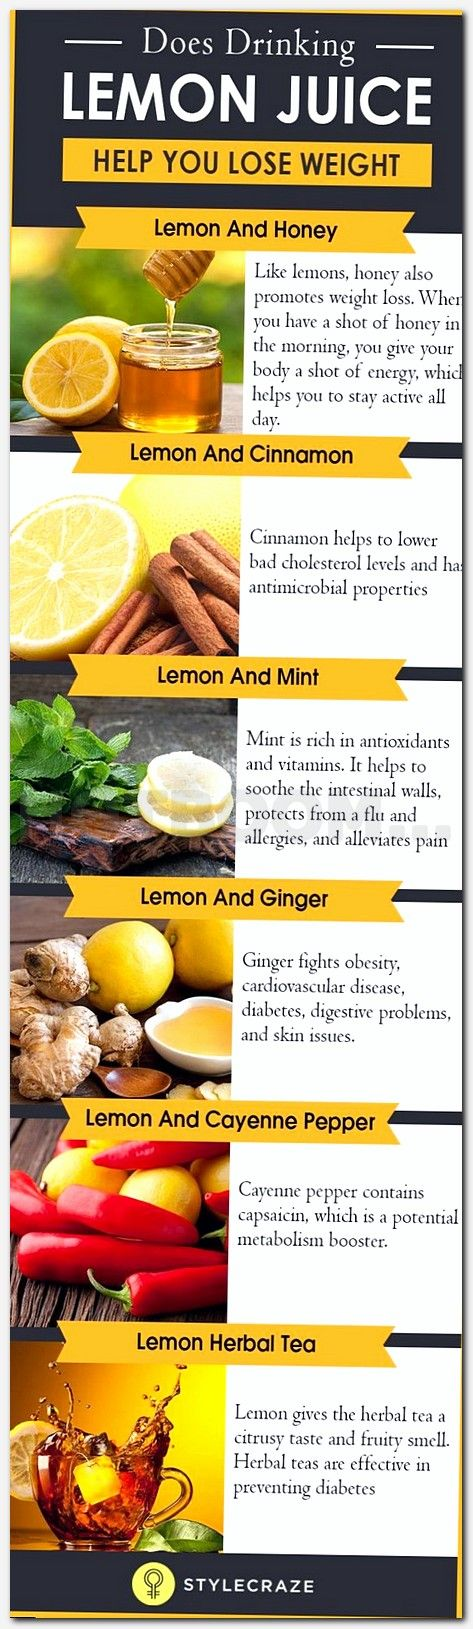 best diet to lose weight without exercise, suitable weight